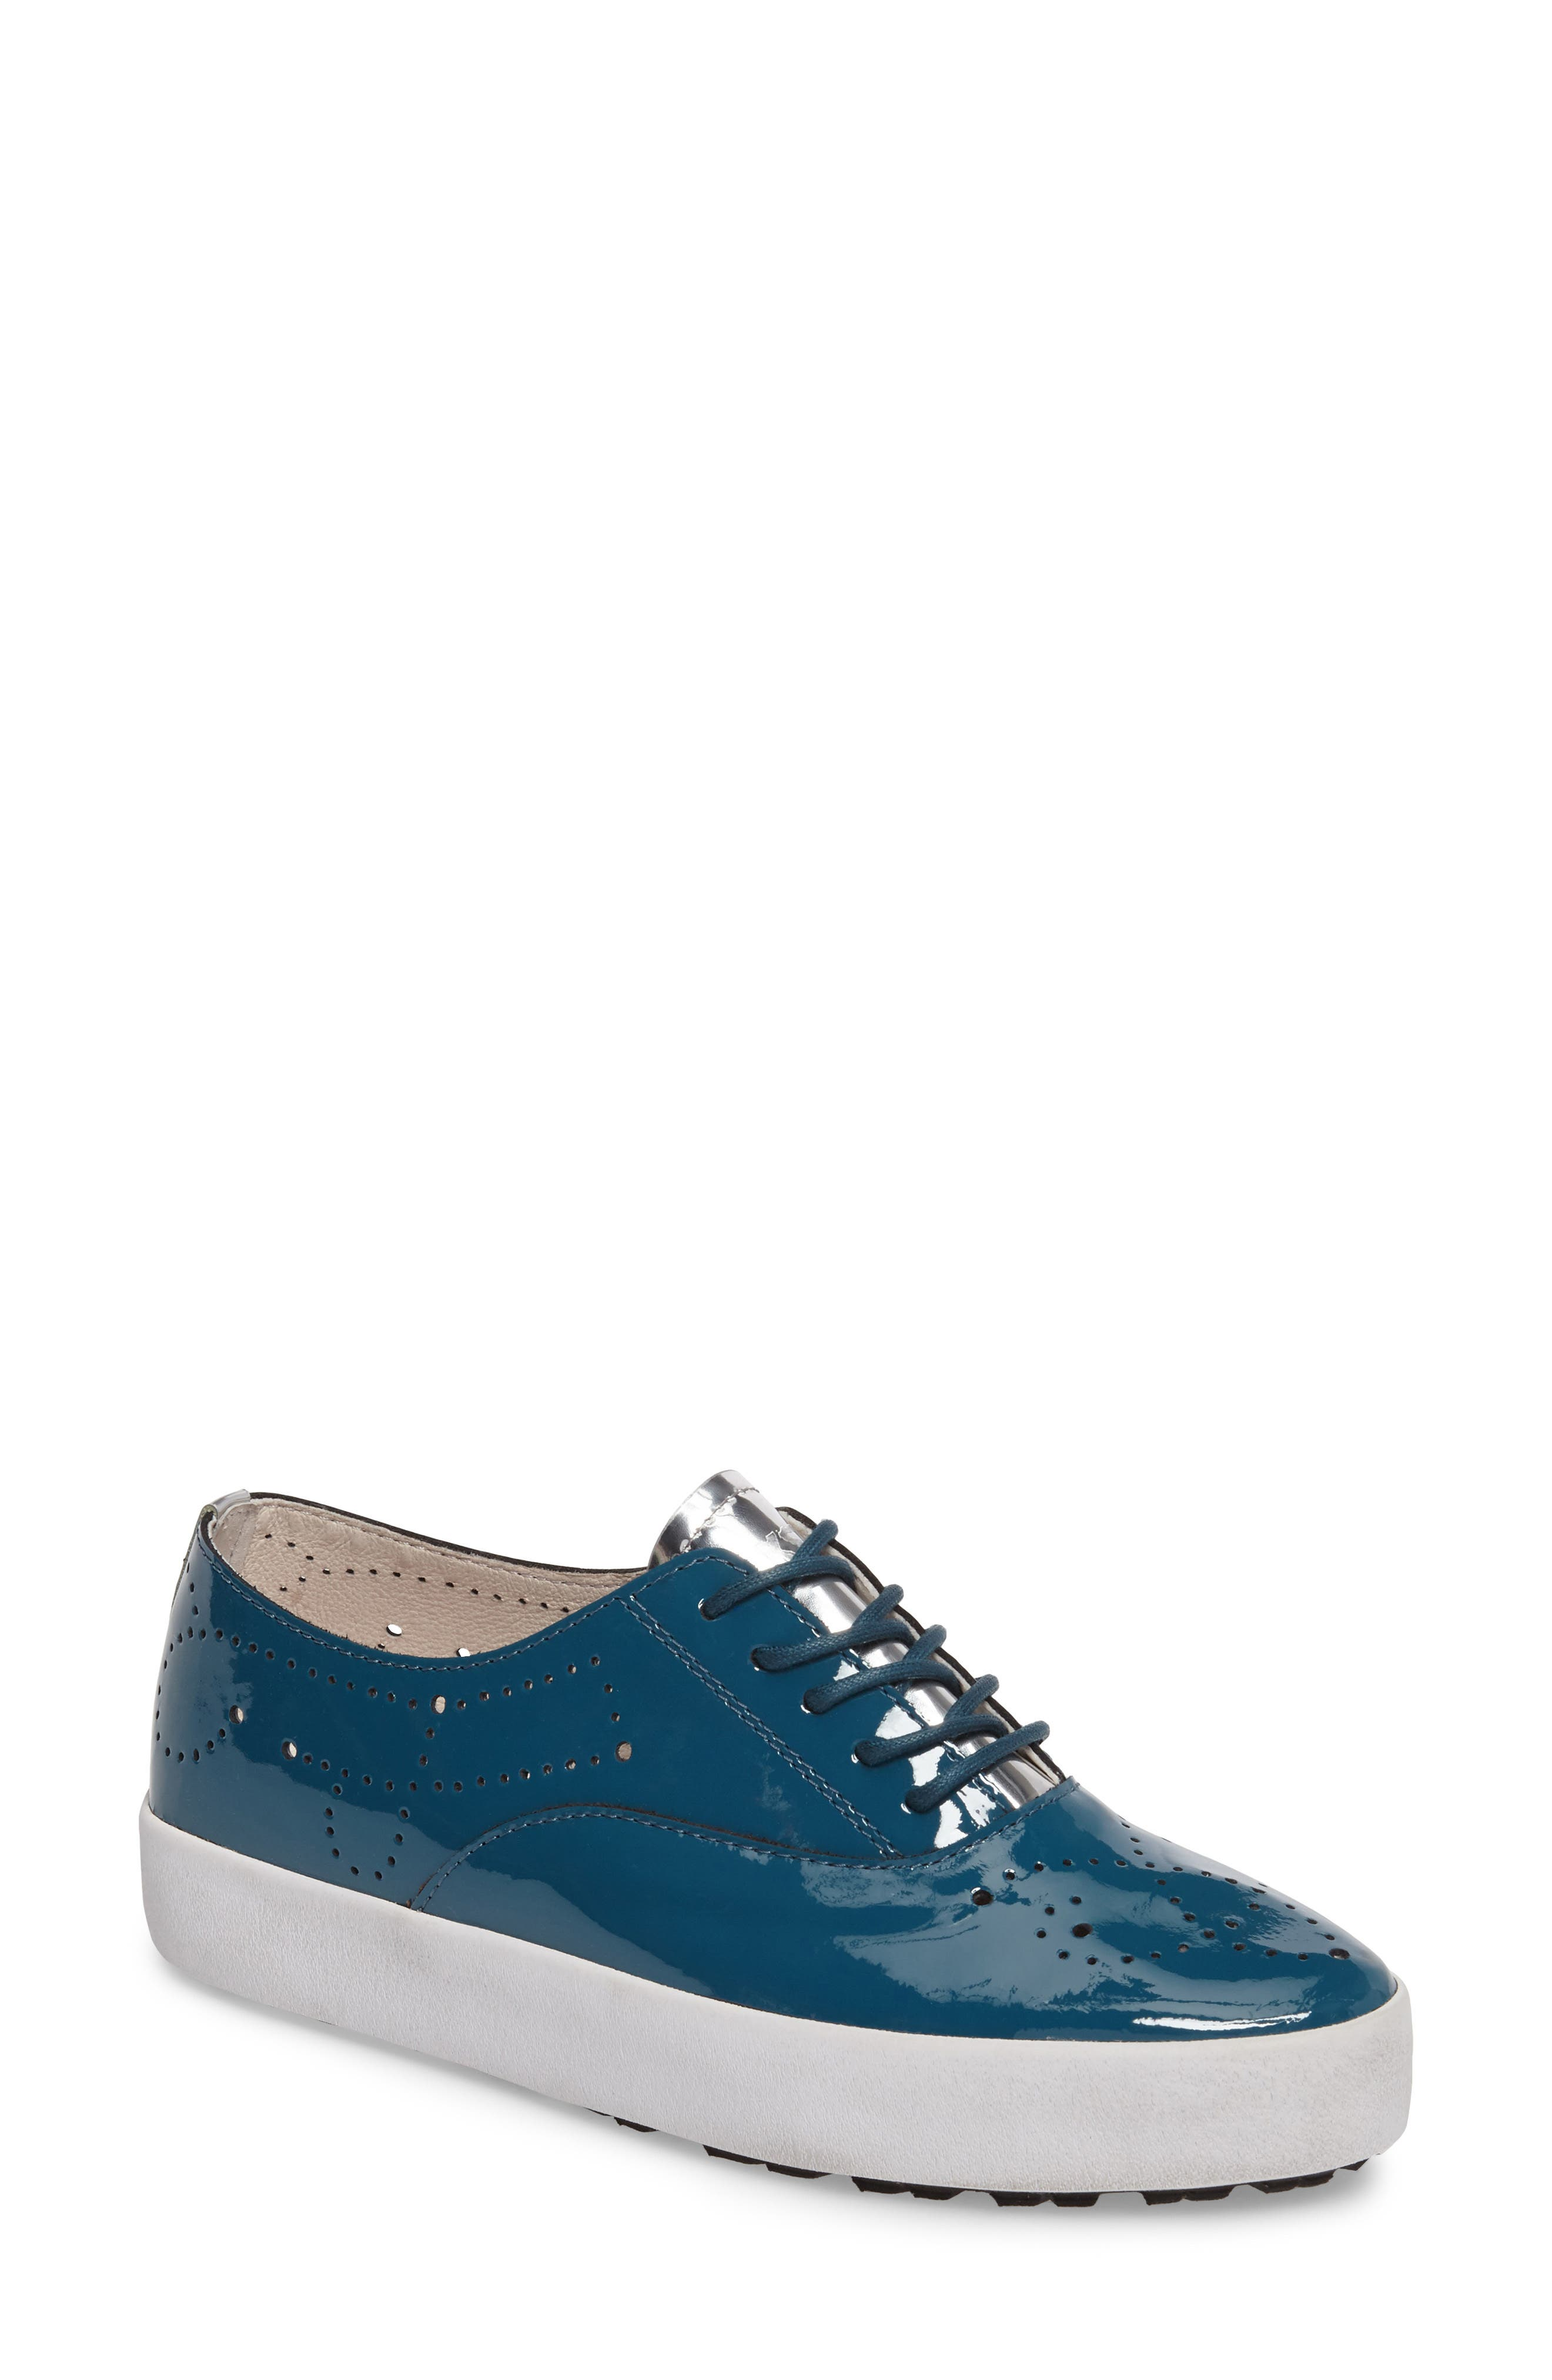 NL41 Sneaker,                         Main,                         color, Turquoise Patent Leather